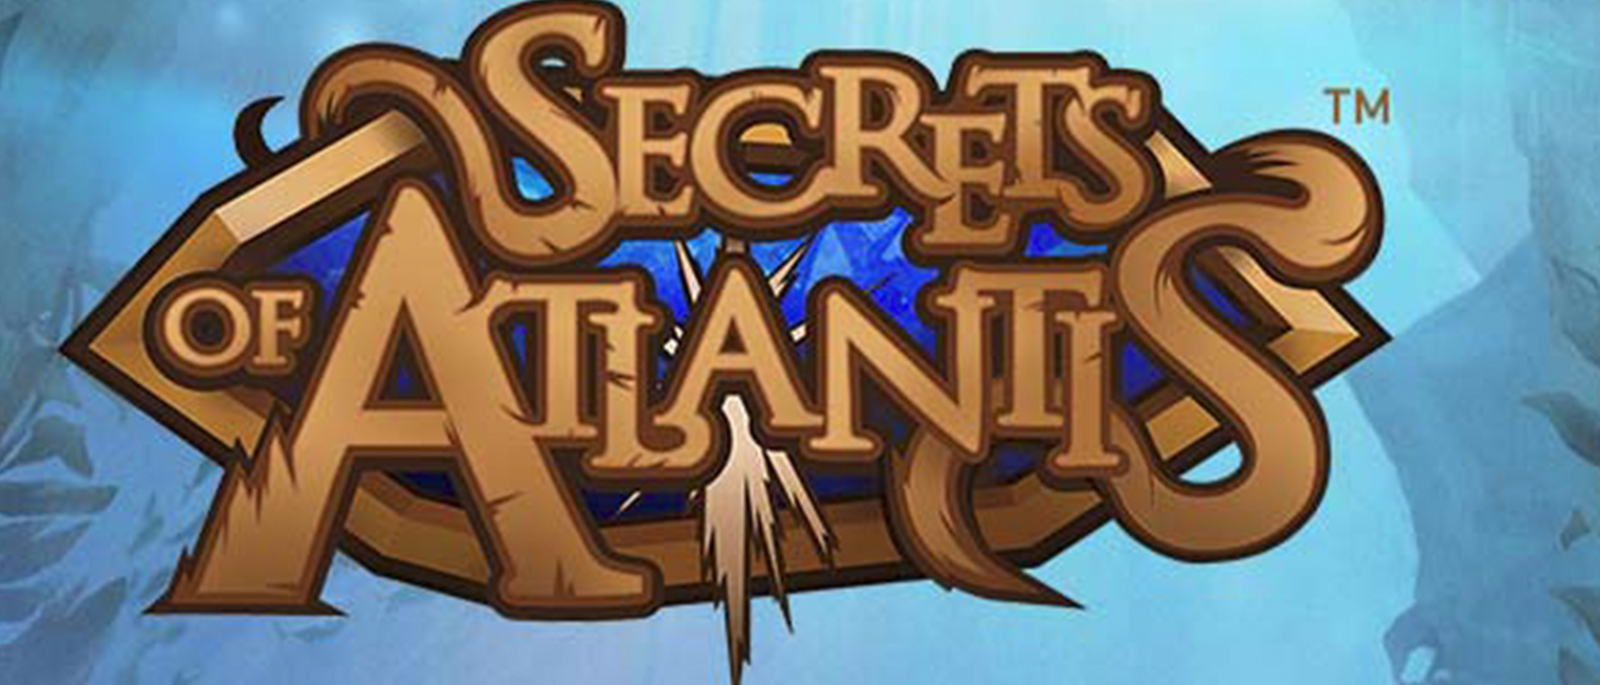 Net Entertainment Secrets of Atlantis Spielautomat